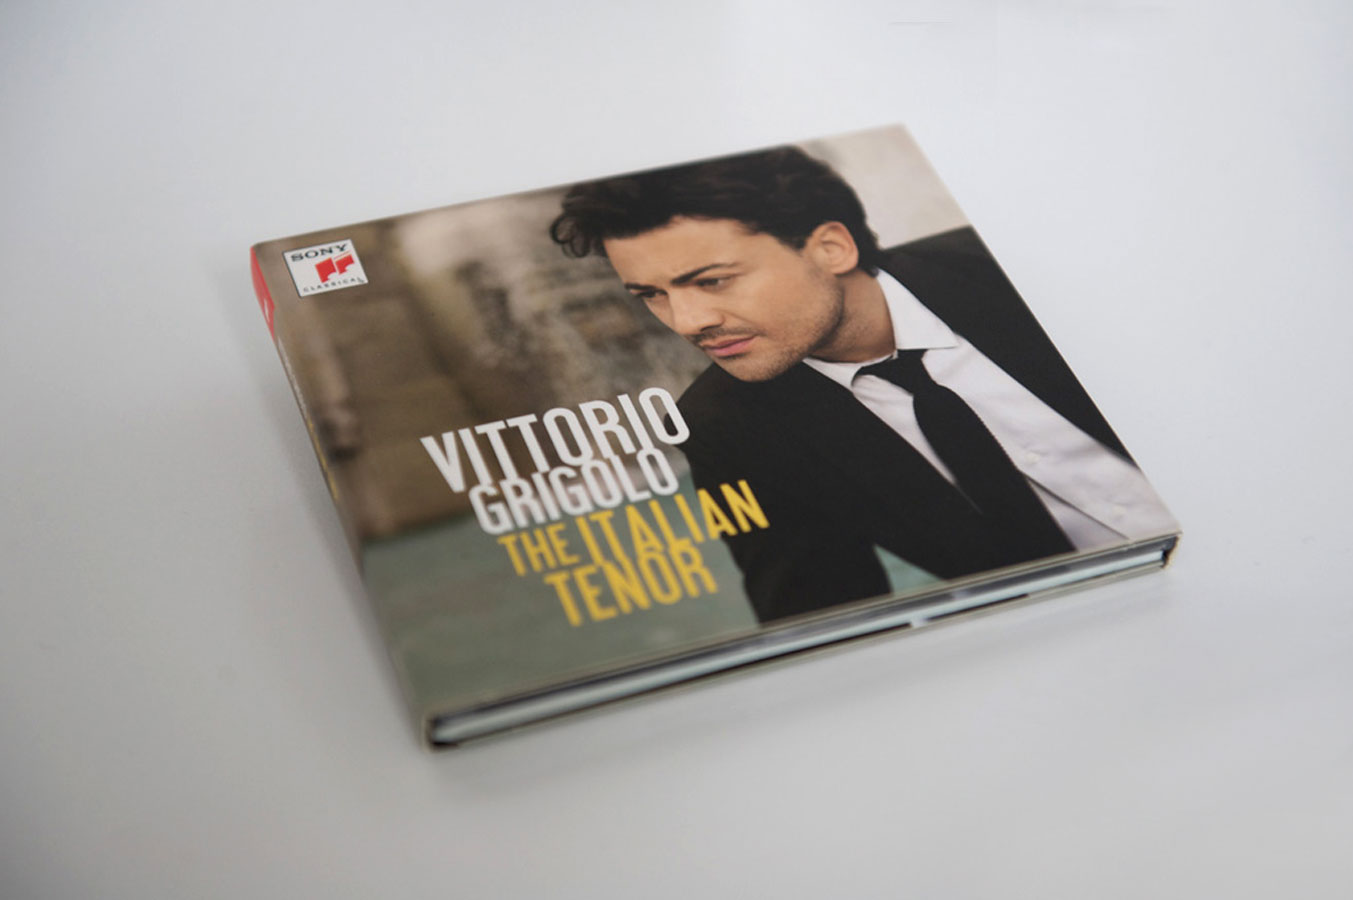 Vittorio Grigolo | The Italian Tenor | Artbook